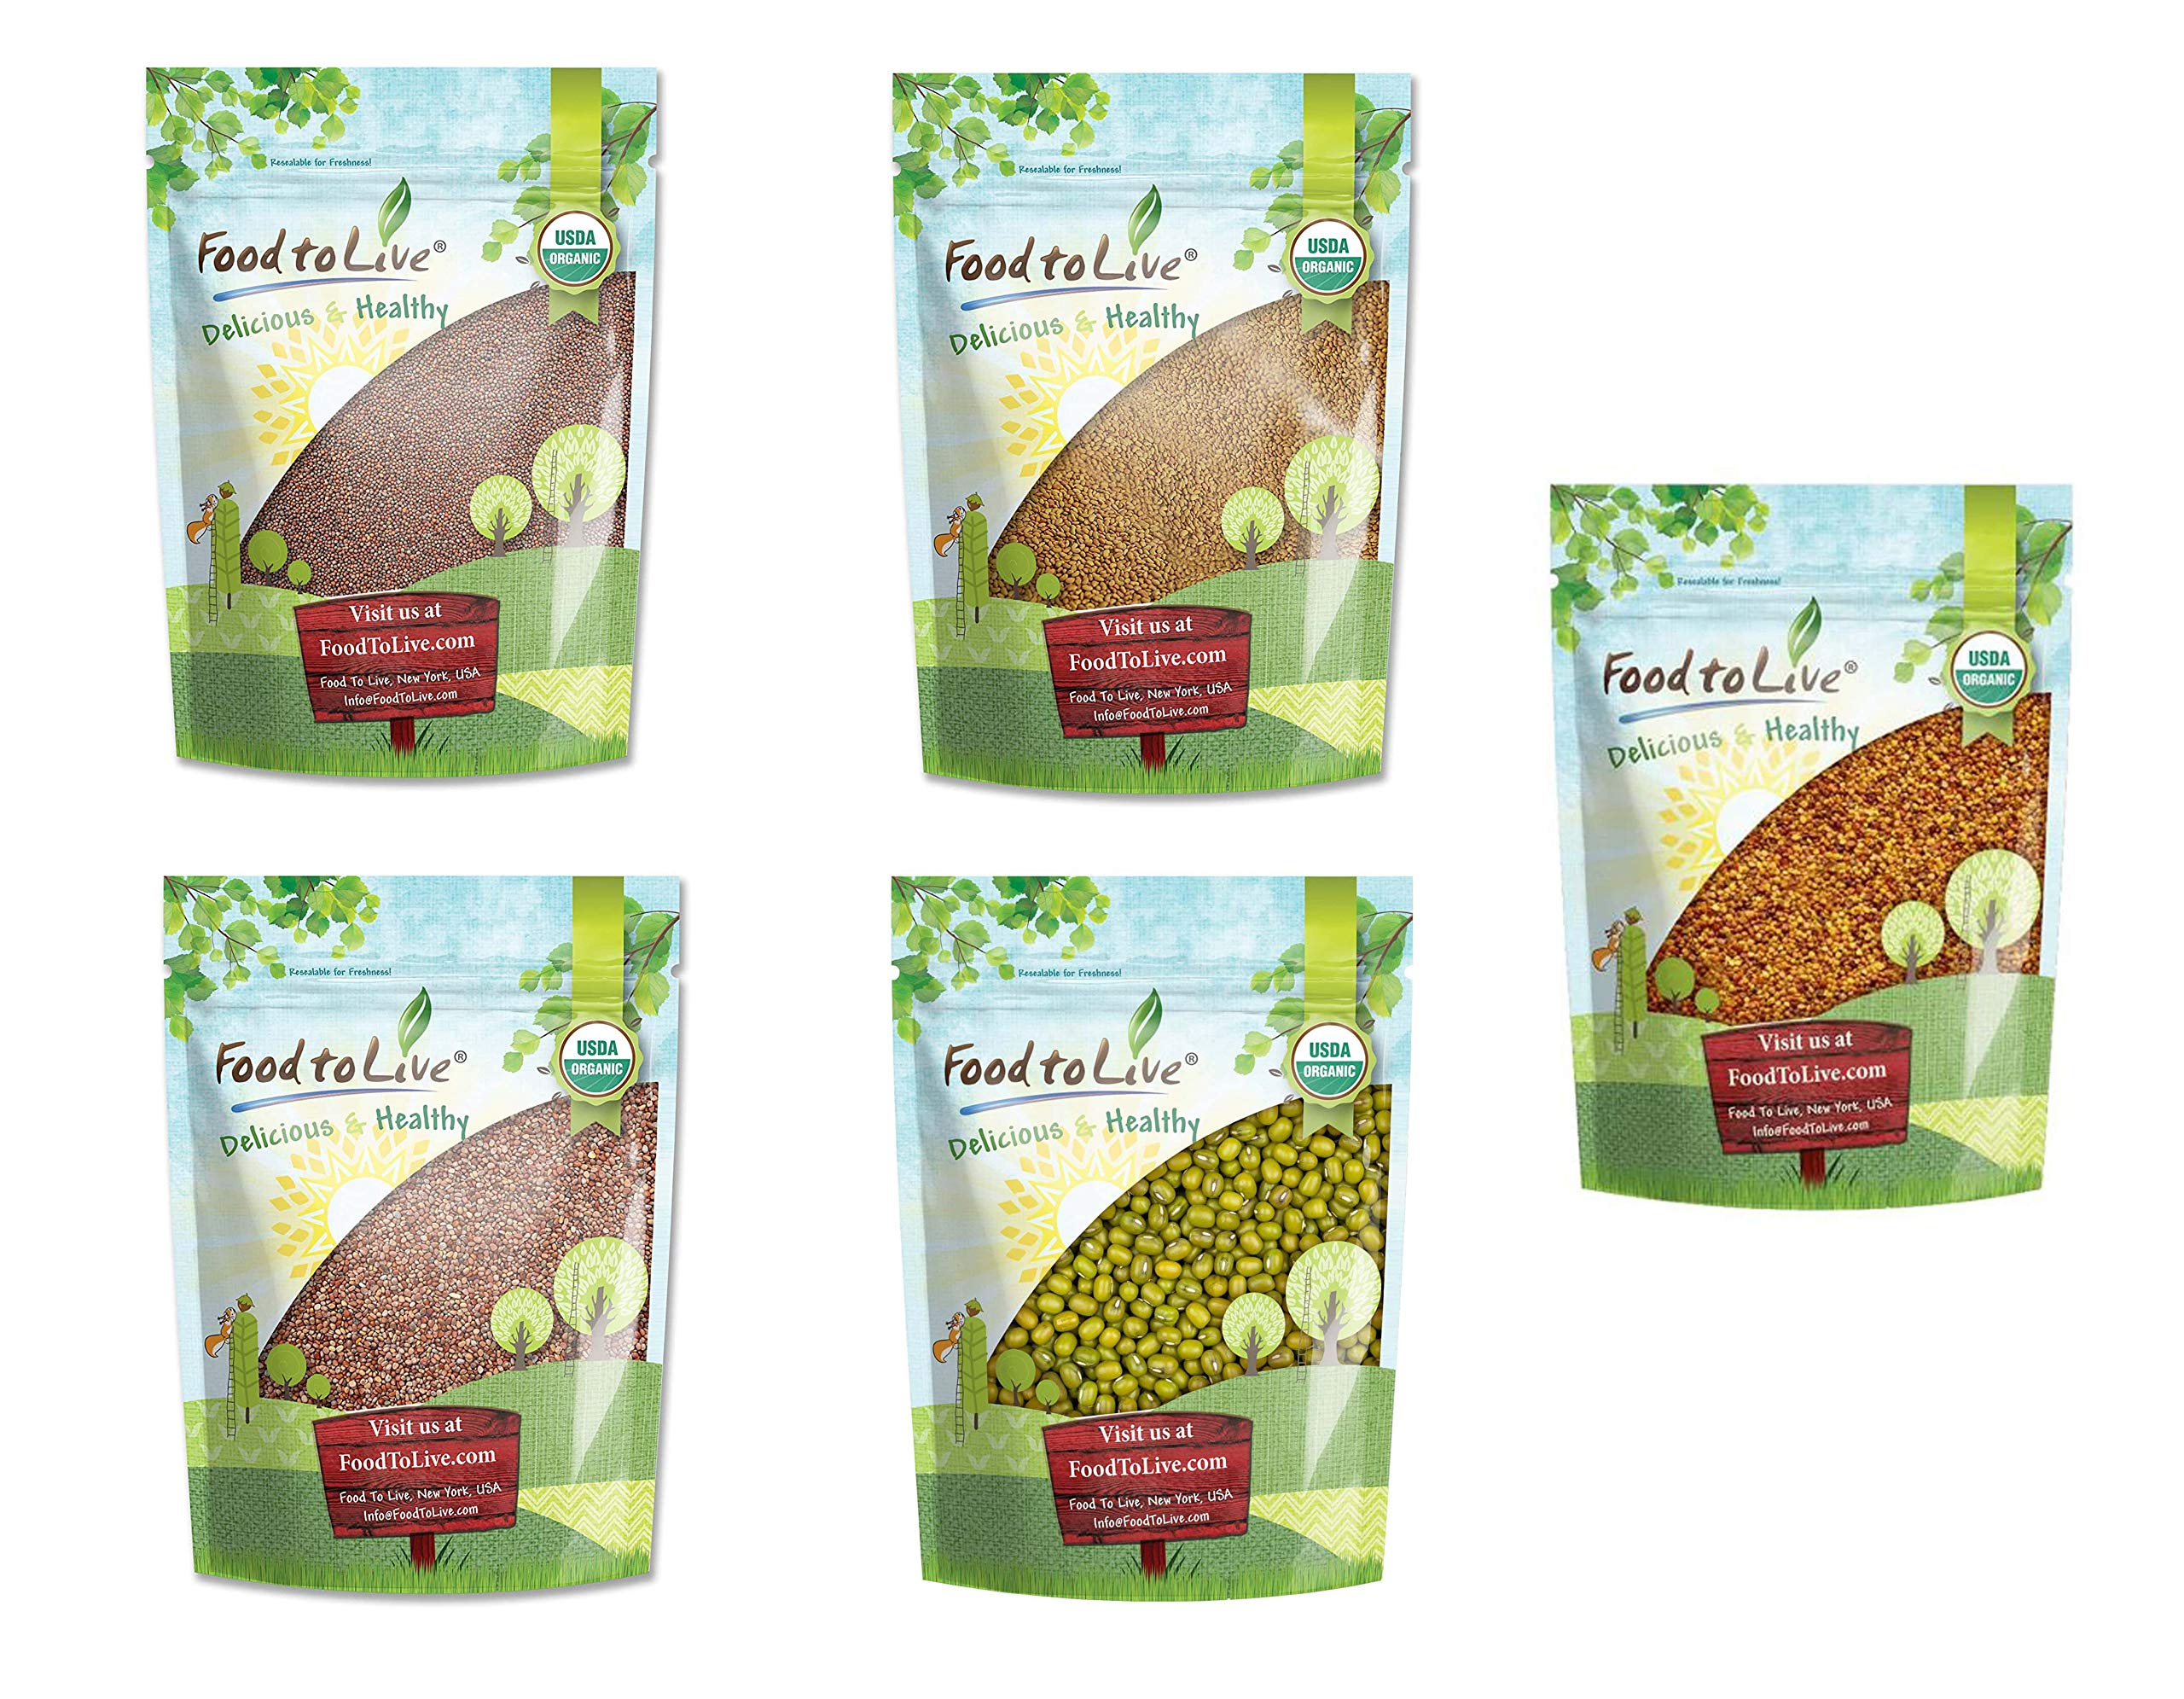 Organic Sprouting Seeds in a Gift Box - A Variety Pack of Broccoli Seeds, Alfalfa Seeds, Radish Seeds, Mung Beans, Clover Seeds by Food to Live